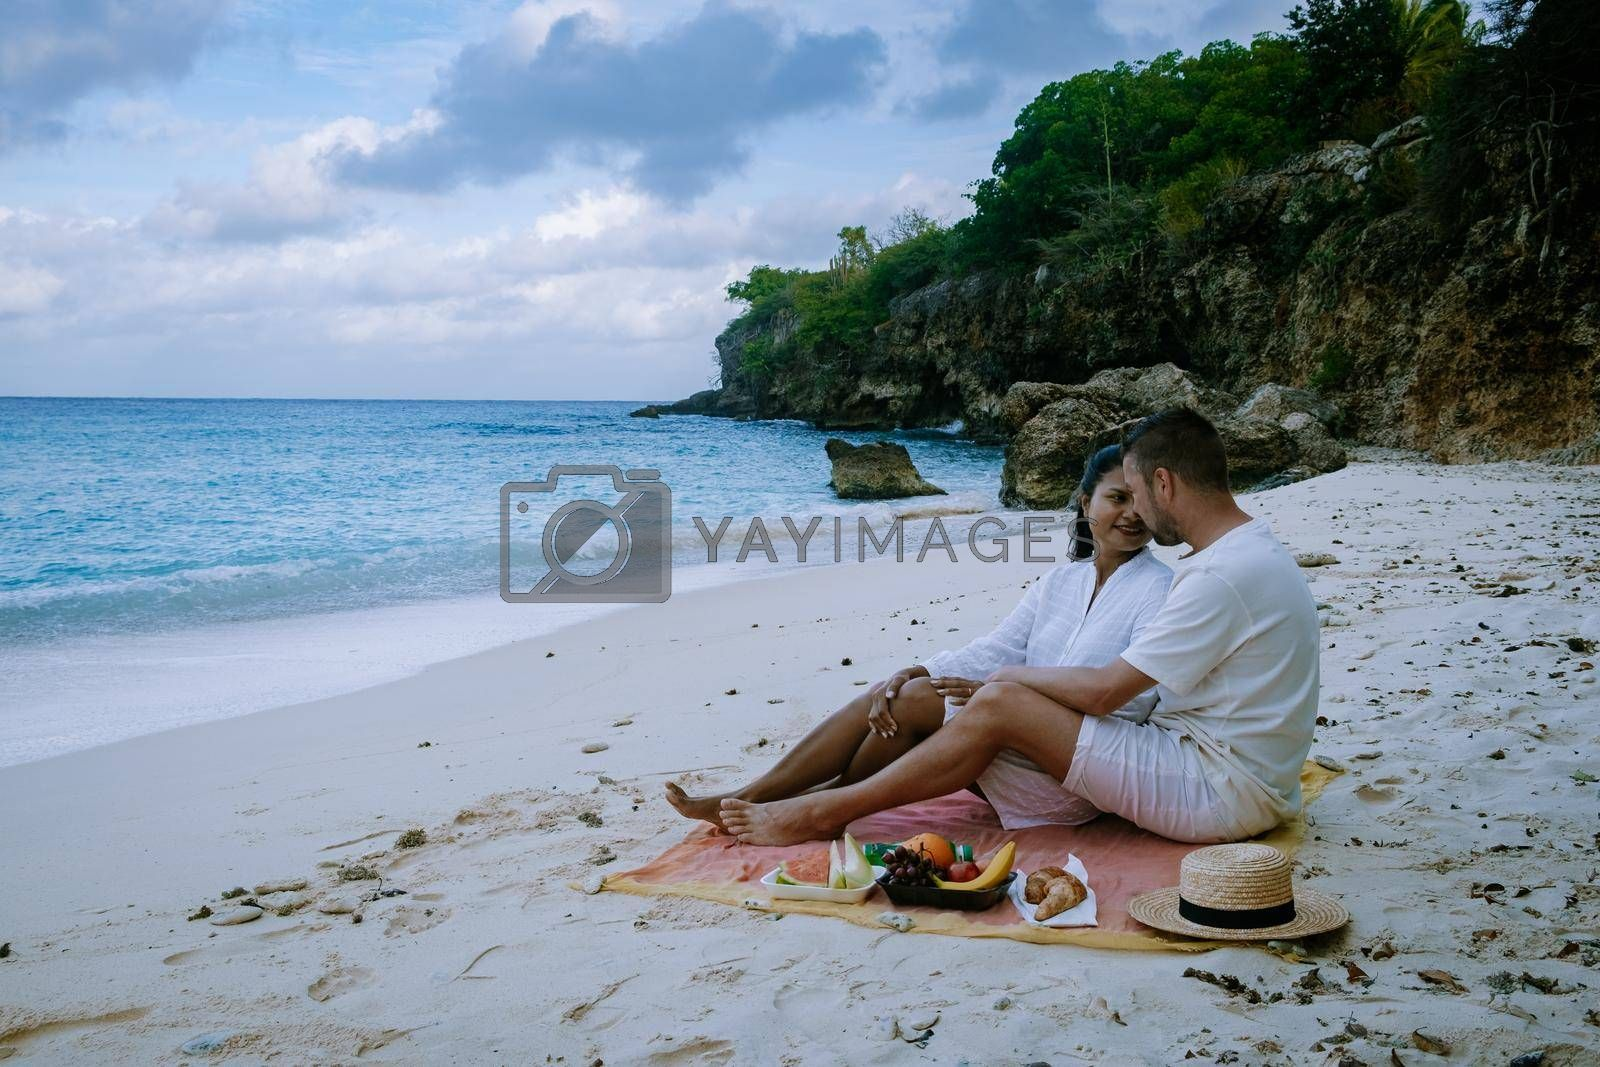 Beach and Pier at playa Kalki in Curacao,picknick on the beach. couple men and woman picknick on the beach